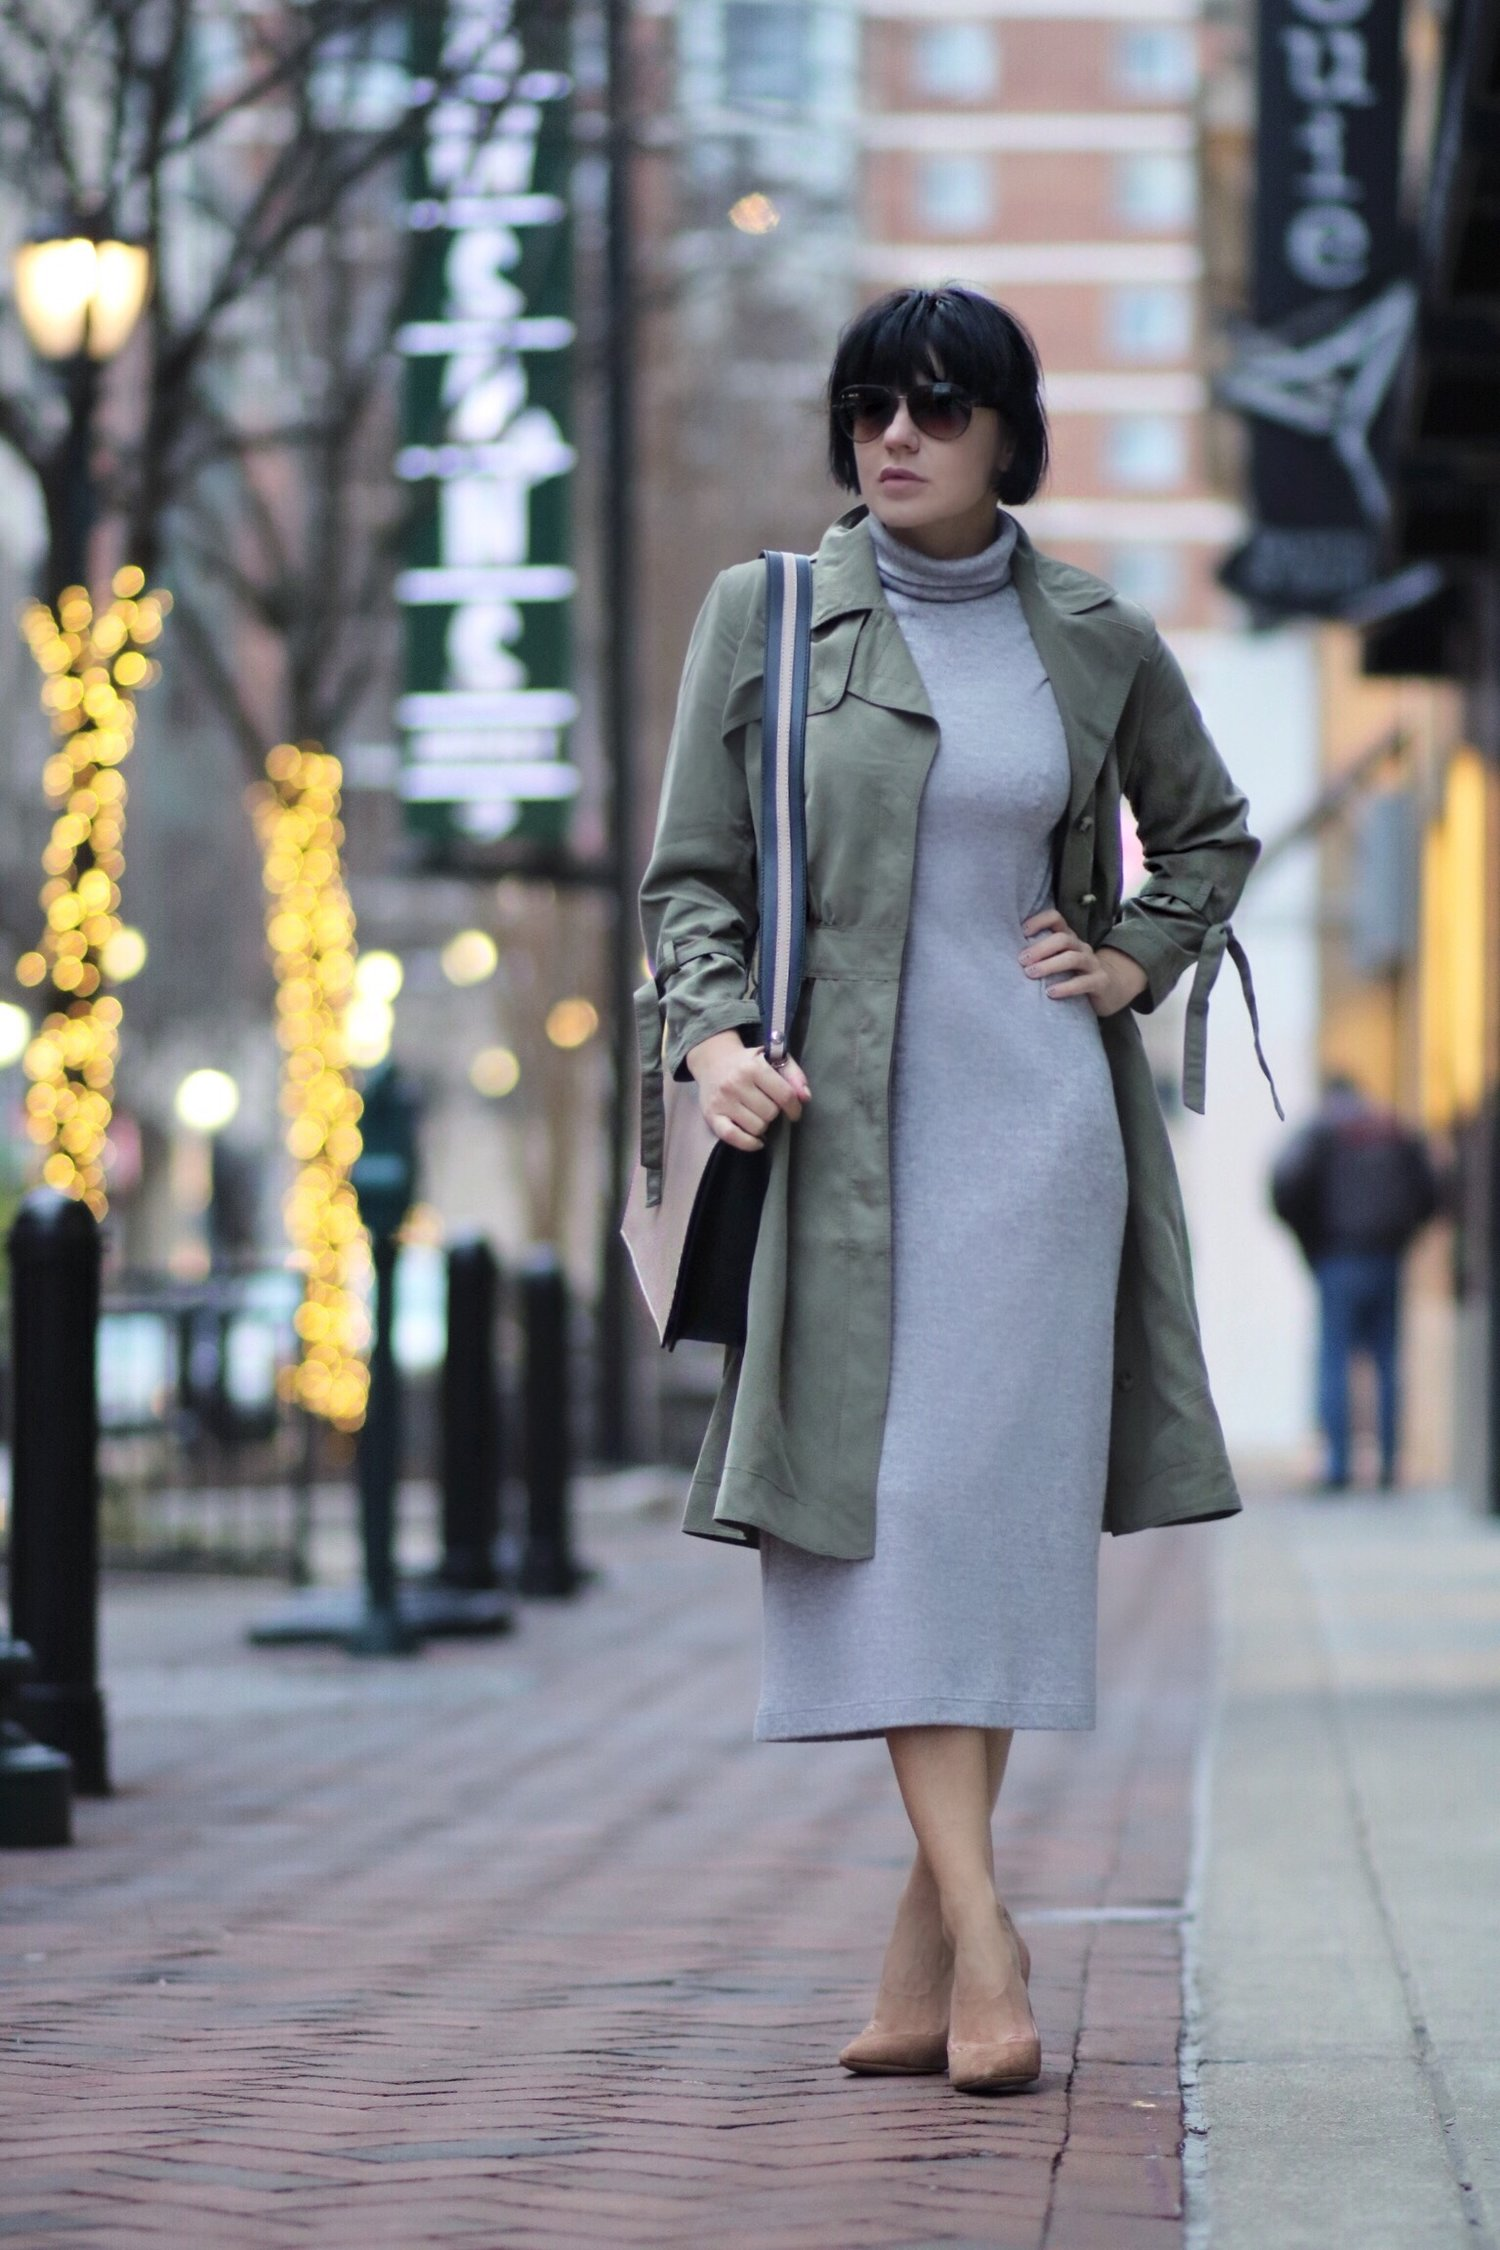 grey knit dress layered trench dress petite outfit